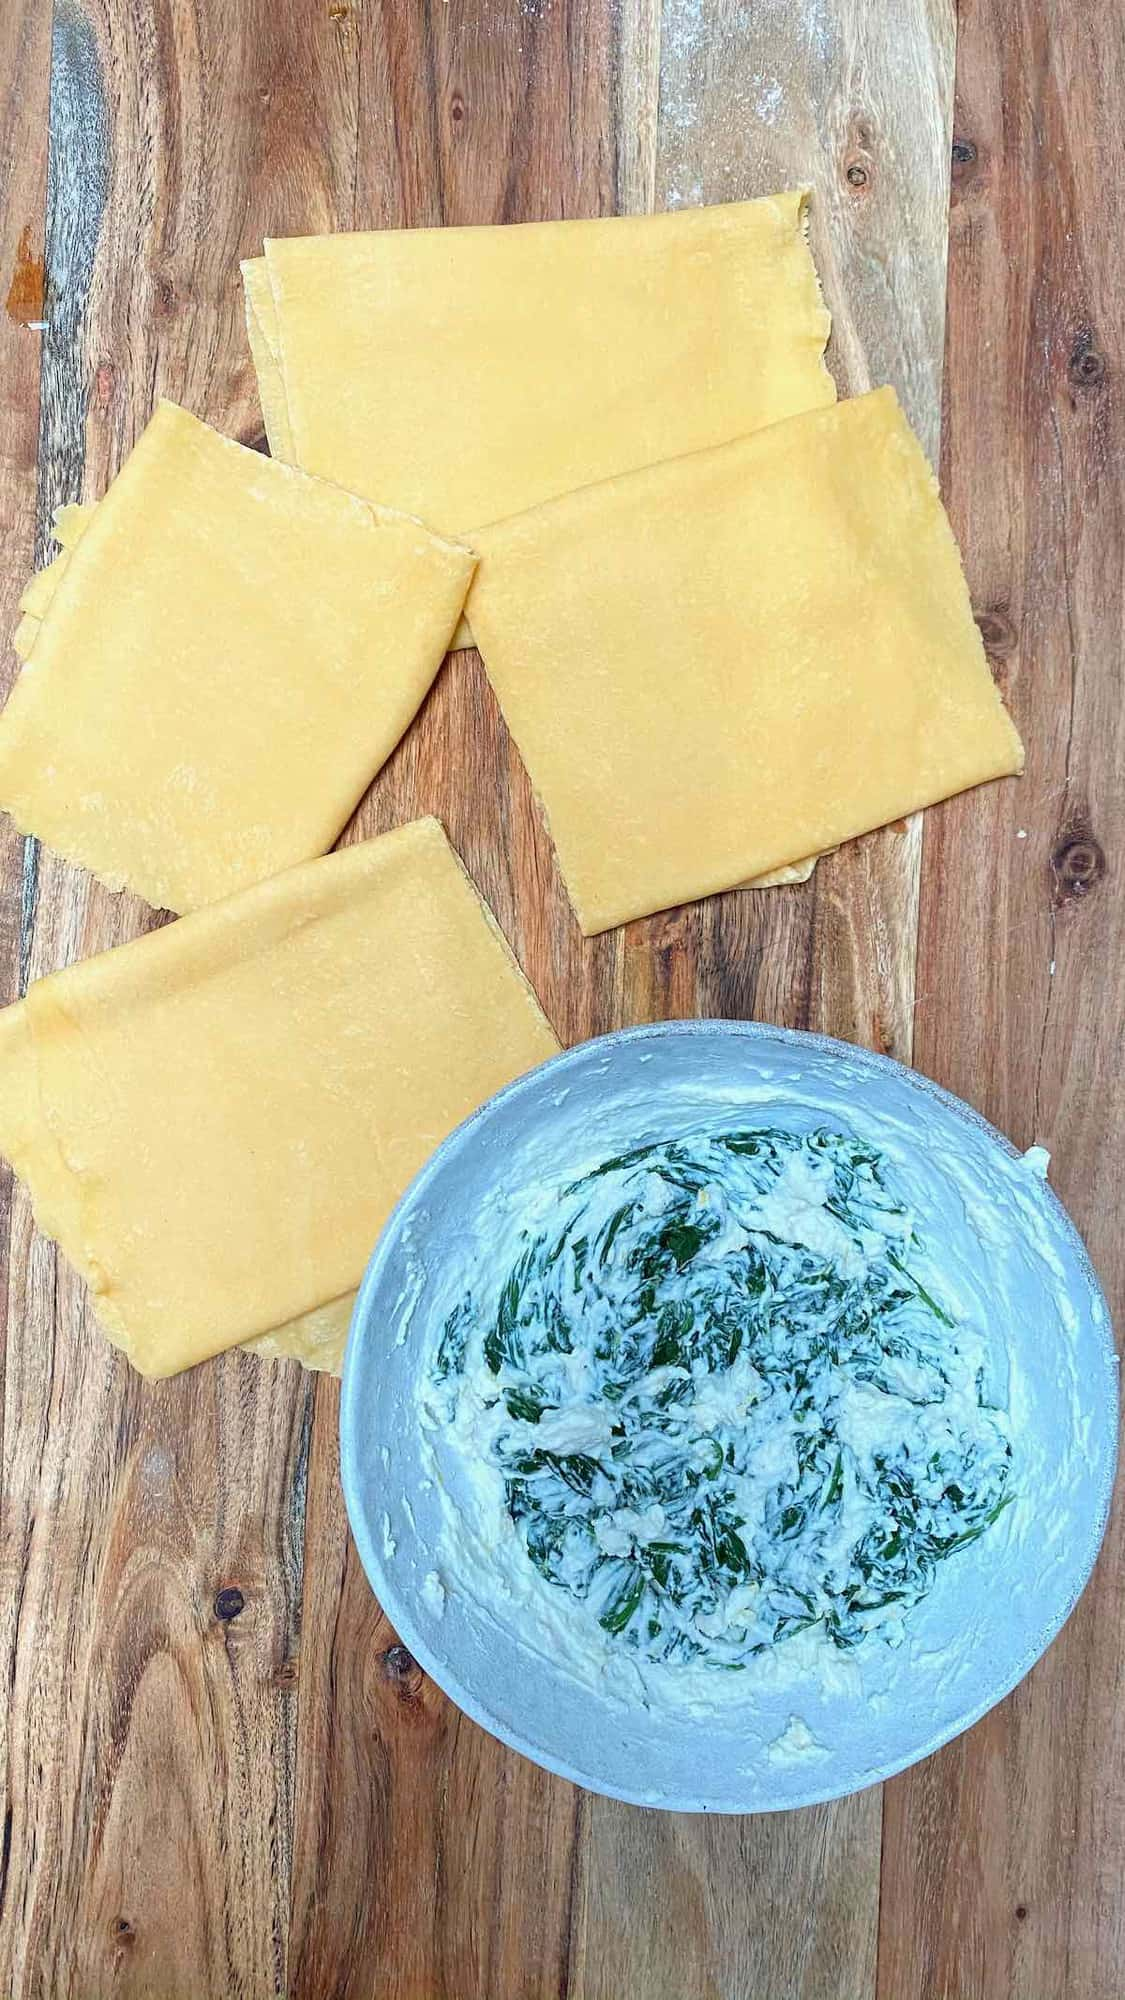 Four sheets of though and spinach ricotta filling in a bowl